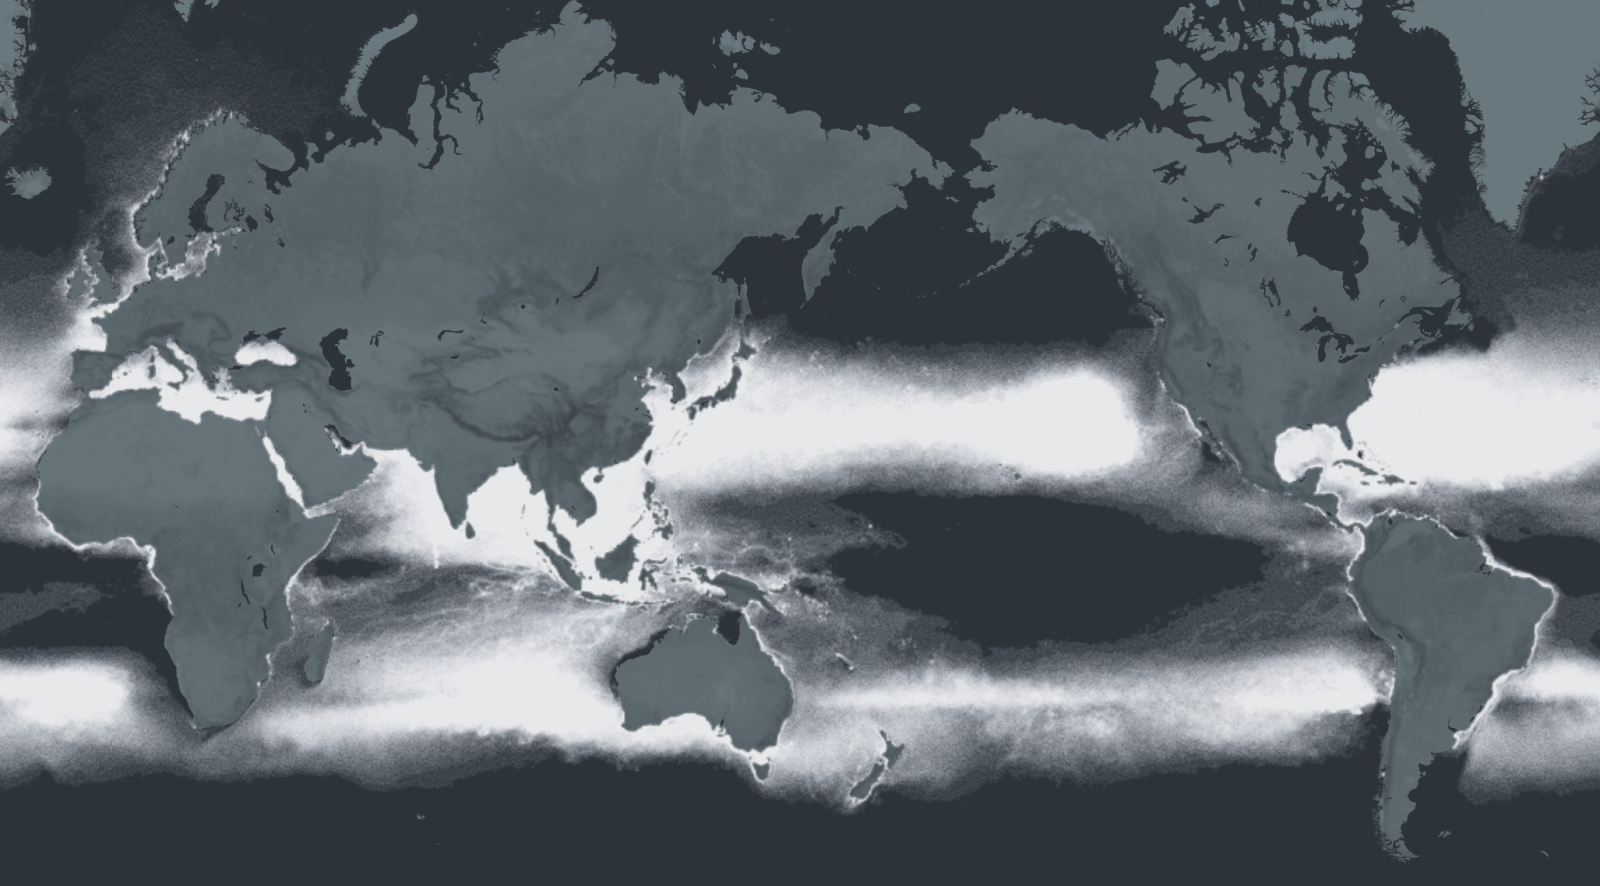 Sailing_Seas_of_Plastic_-_Interactive_Data_Visualisation